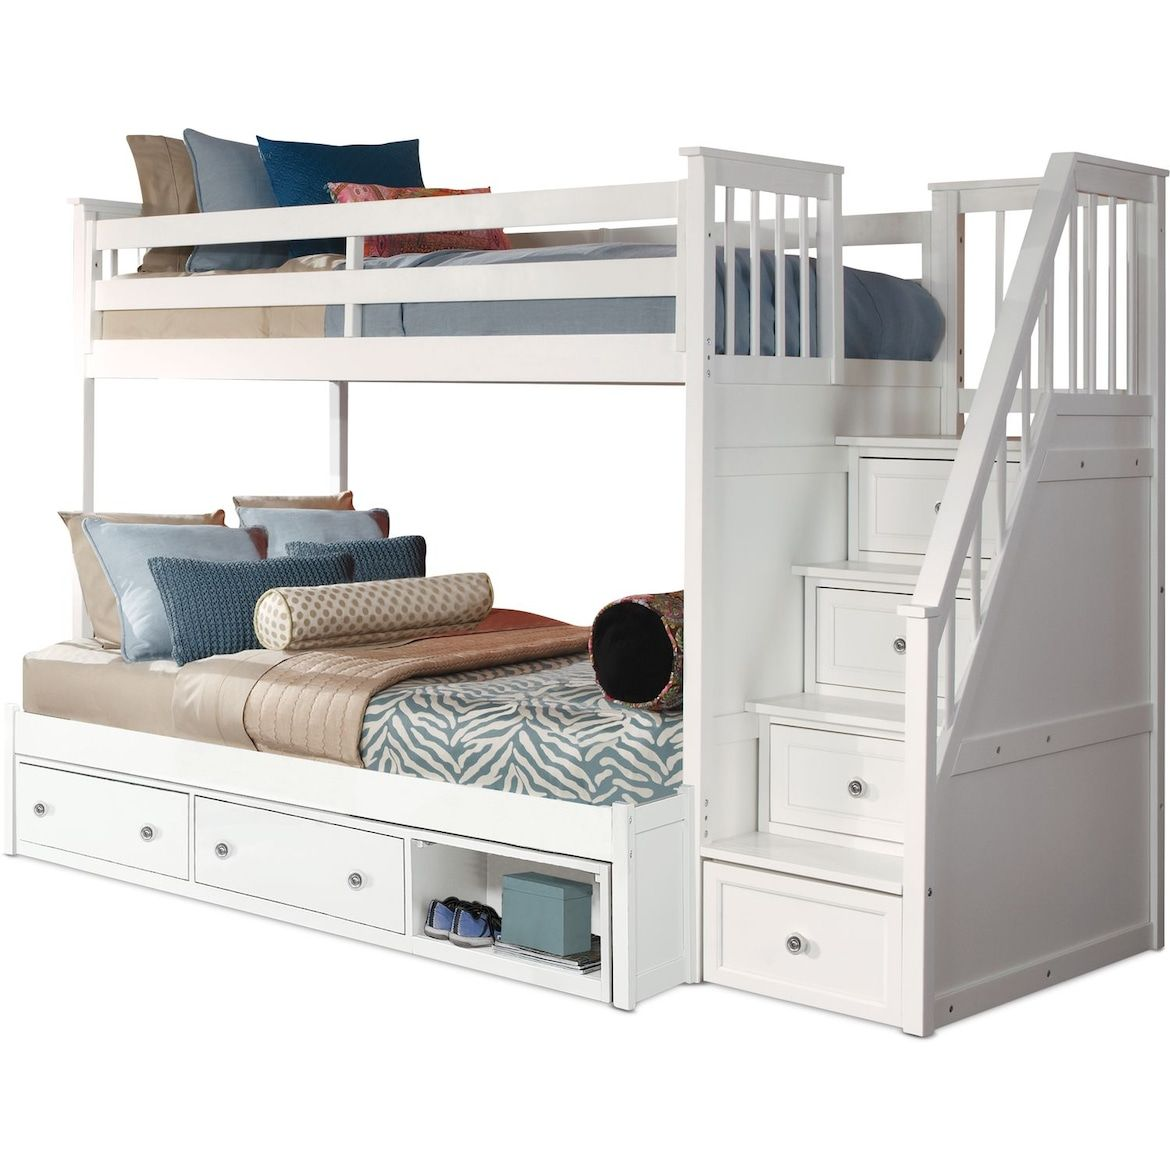 Flynn Storage Bunk Bed With Storage Stairs Value City Furniture And Mattresses Bunk Beds With Storage Bunk Beds For Girls Room Bunk Bed With Trundle Bunk beds with drawers underneath